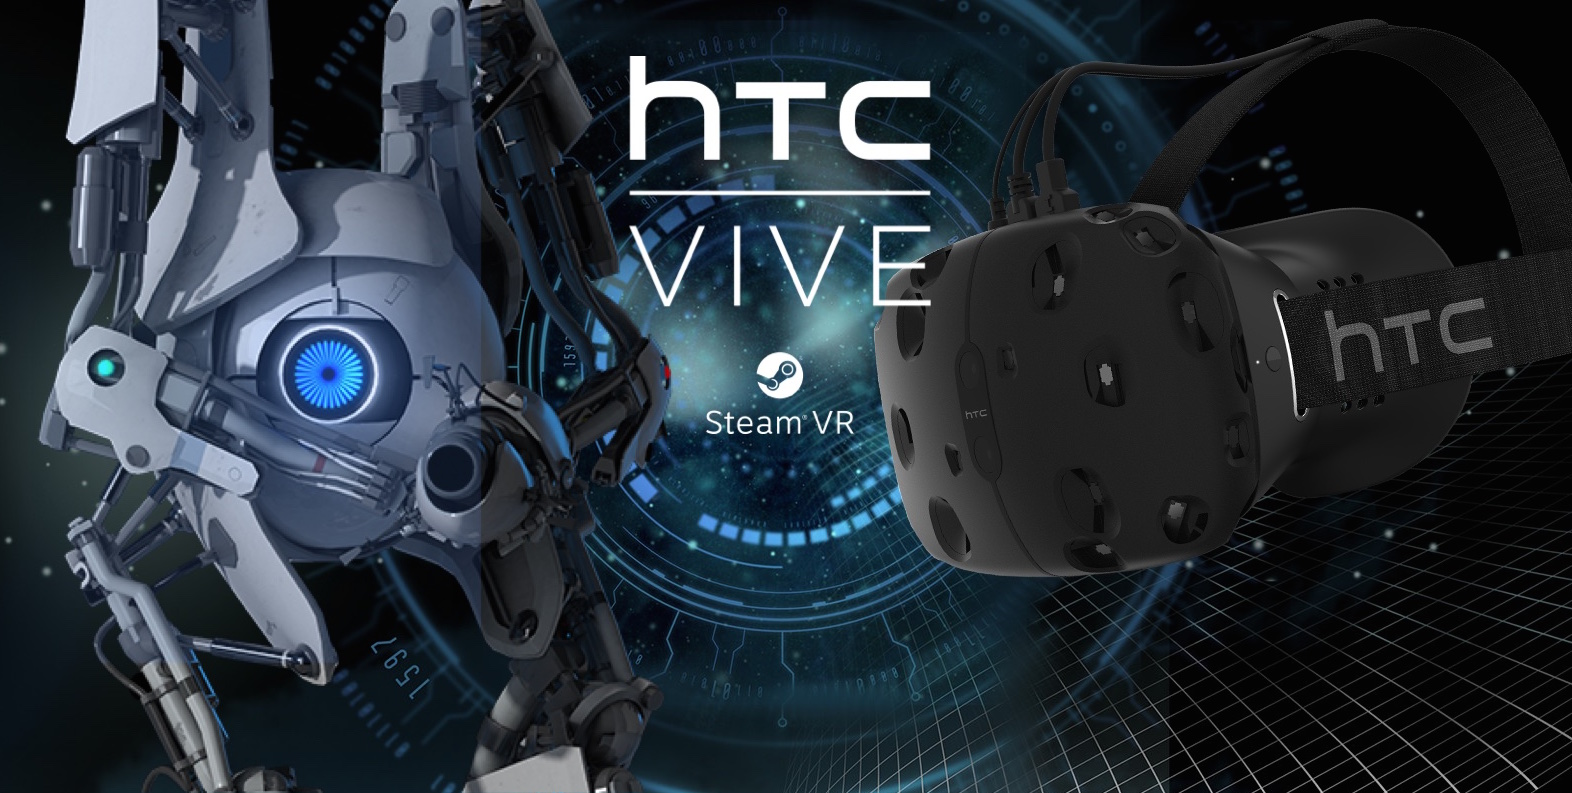 The HTC Vive Is Coming To Gamescom 2015 Register Now To Try It